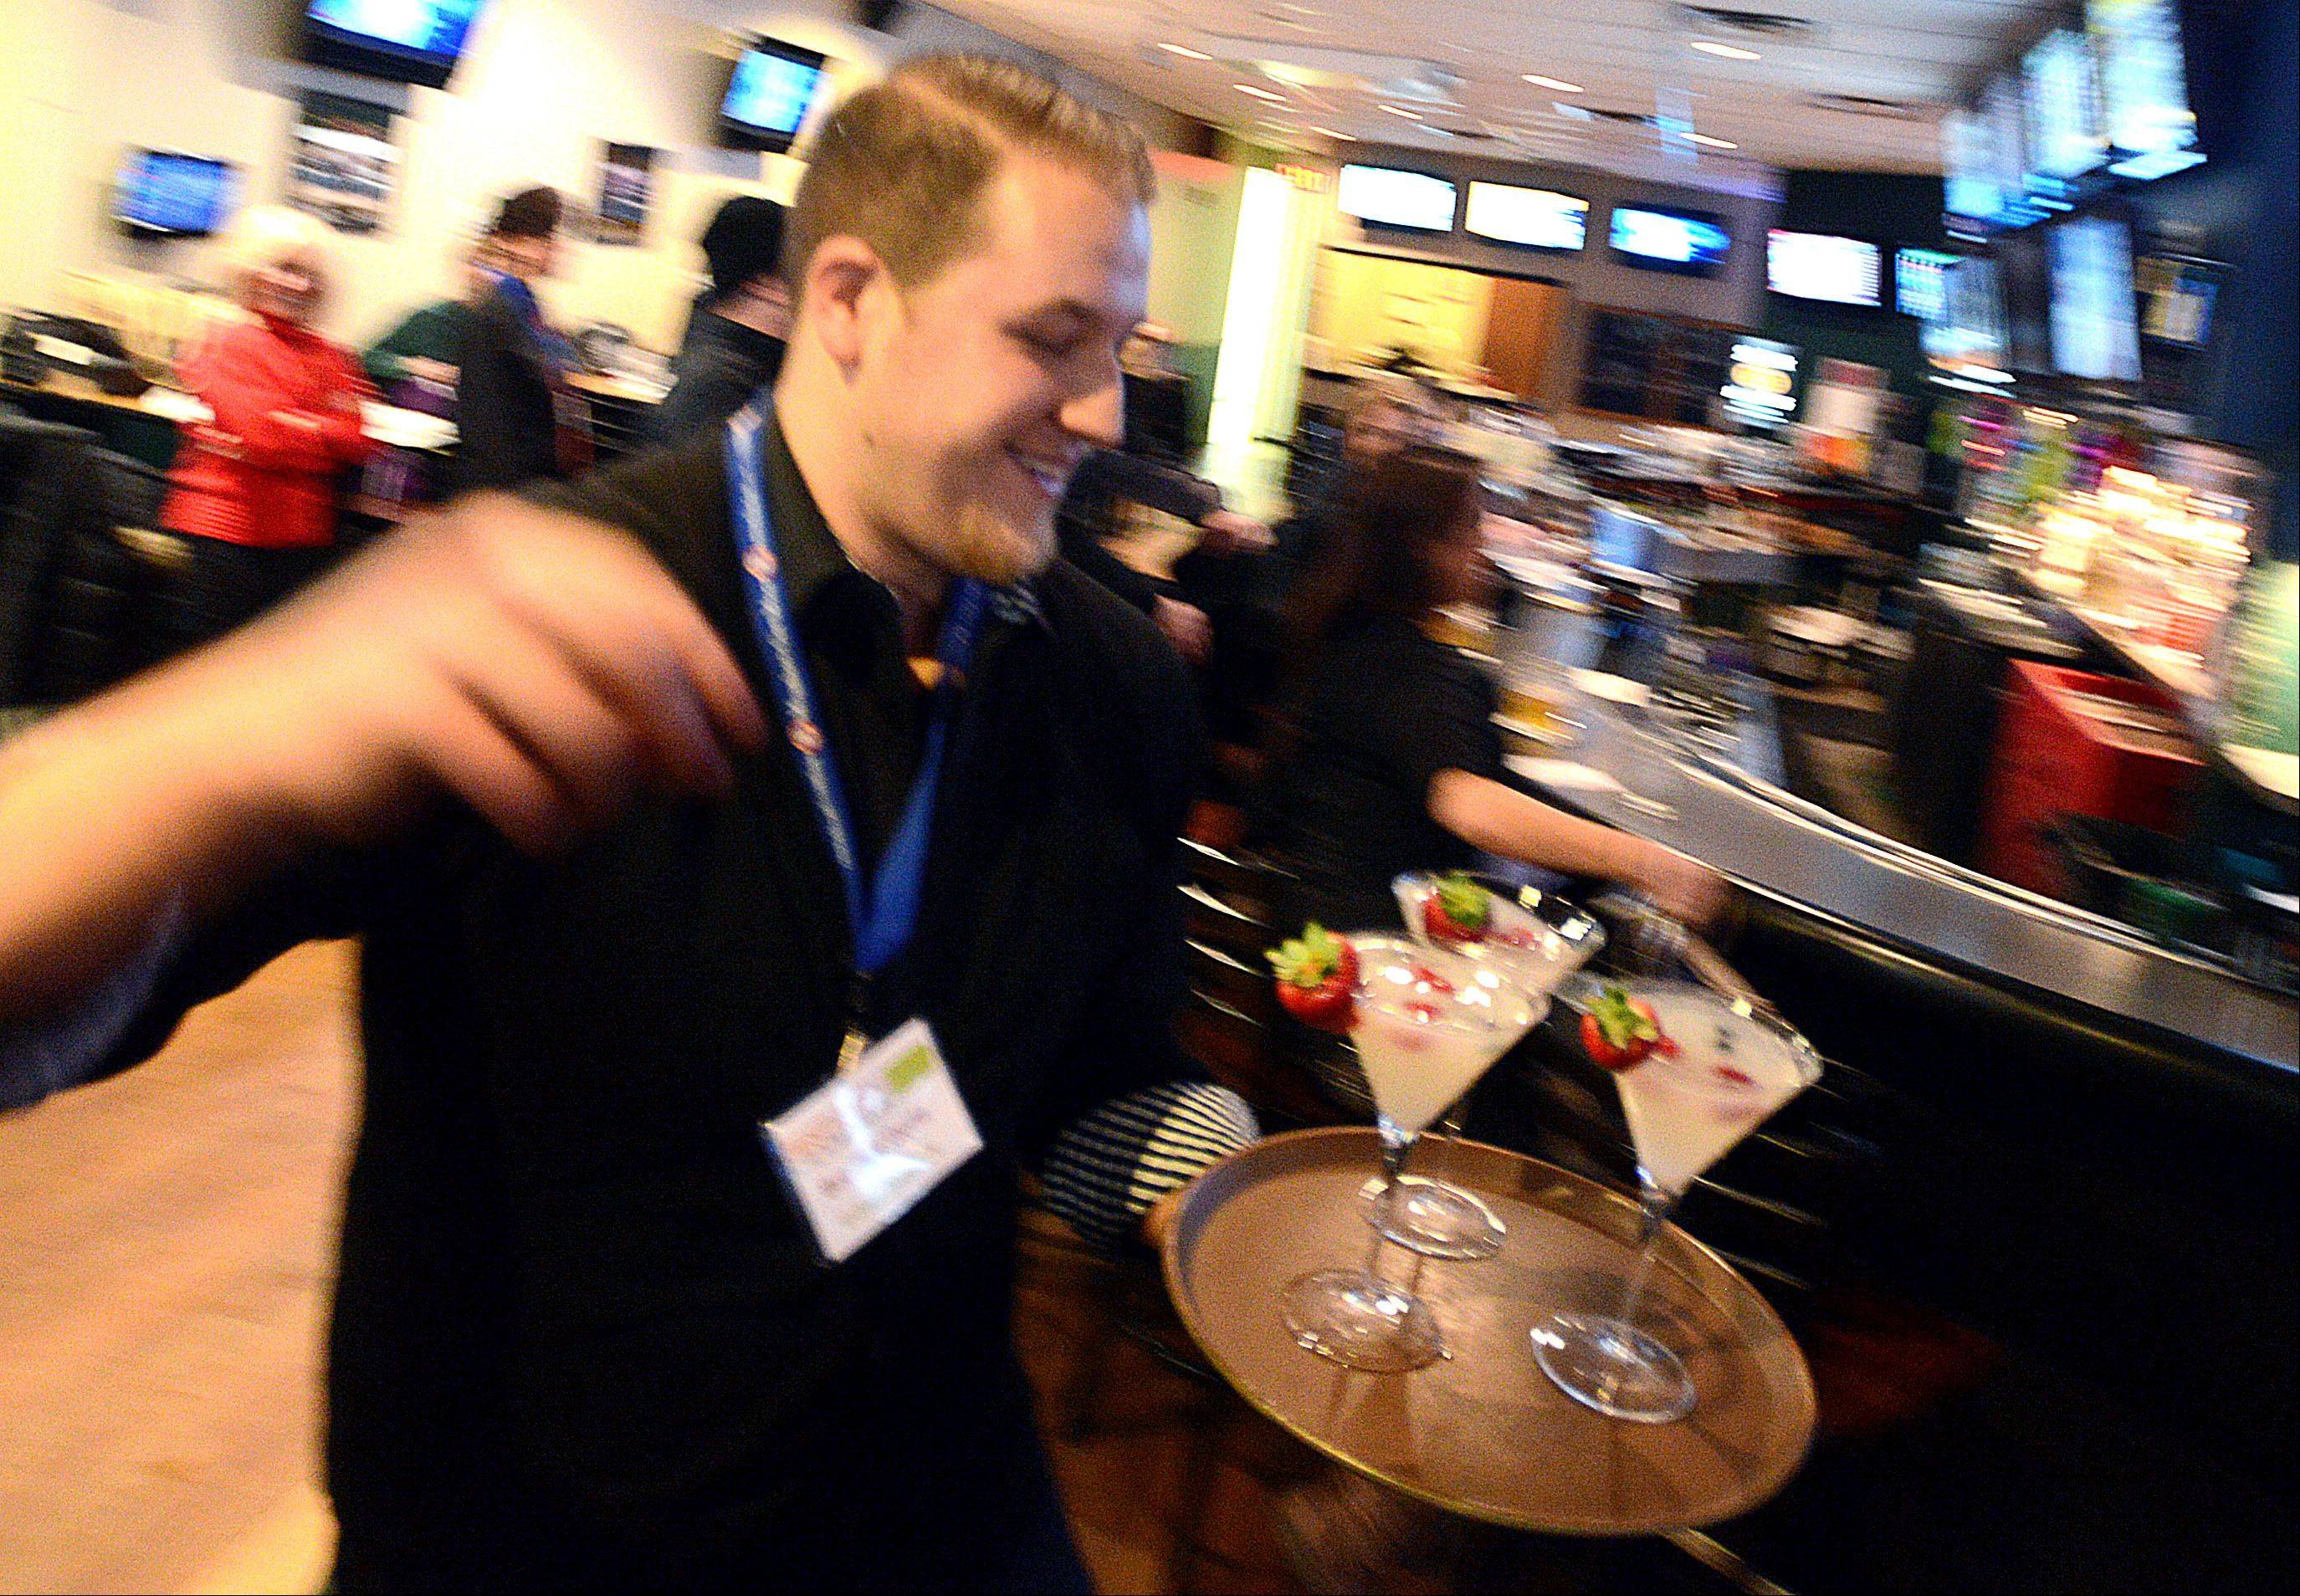 Mixologist Bradley Gertz of Eddie Merlot's Lincolnshire restaurant delivers his Berry White Martinis during the Daily Herald's Best Martini in the 'Burbs Challenge at the At The Post Sports Bar & OTB in Elk Grove Village on Monday night.